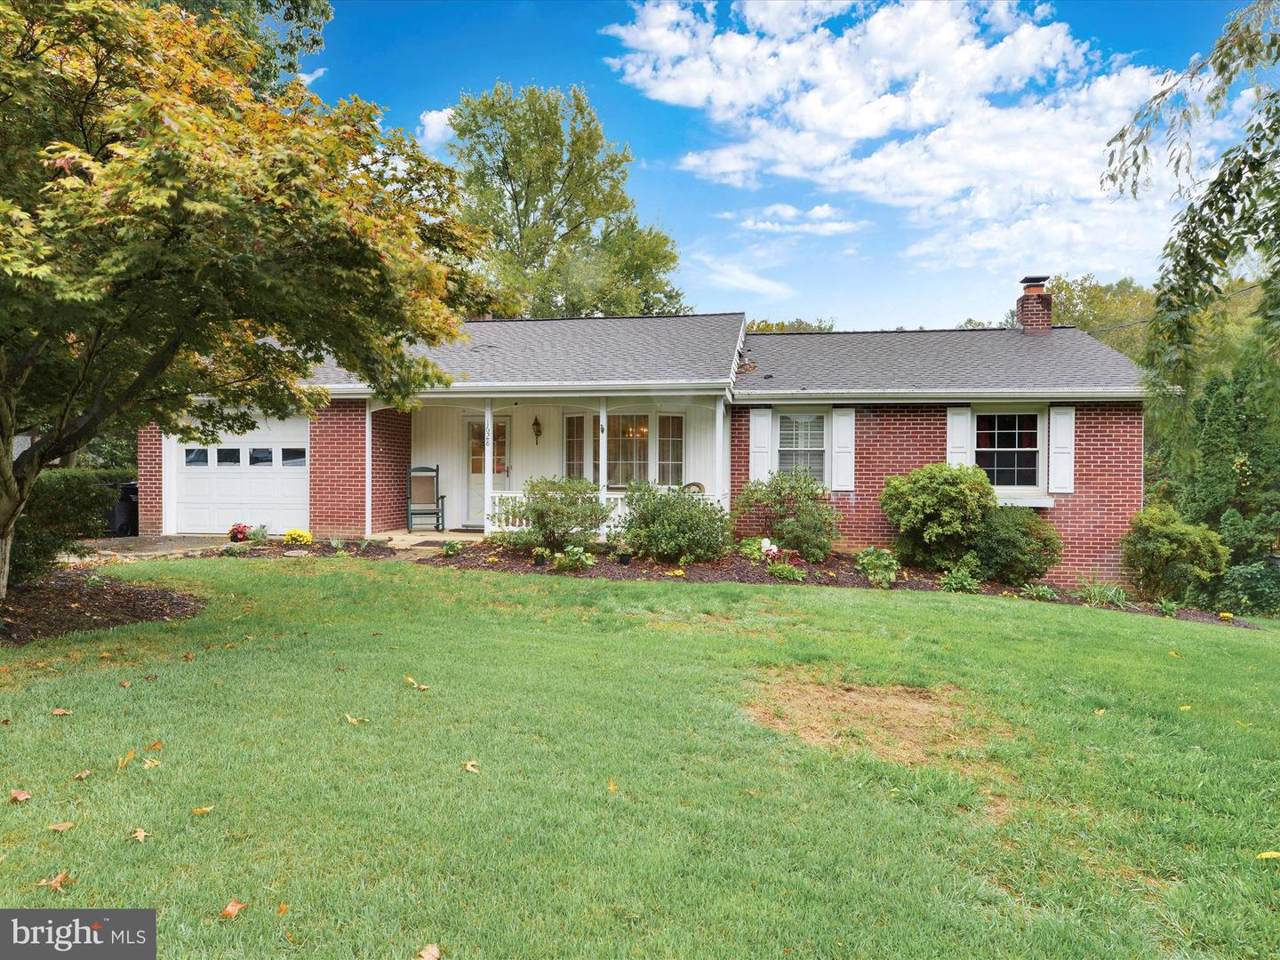 1628 Colonial Manor Drive - Photo 1